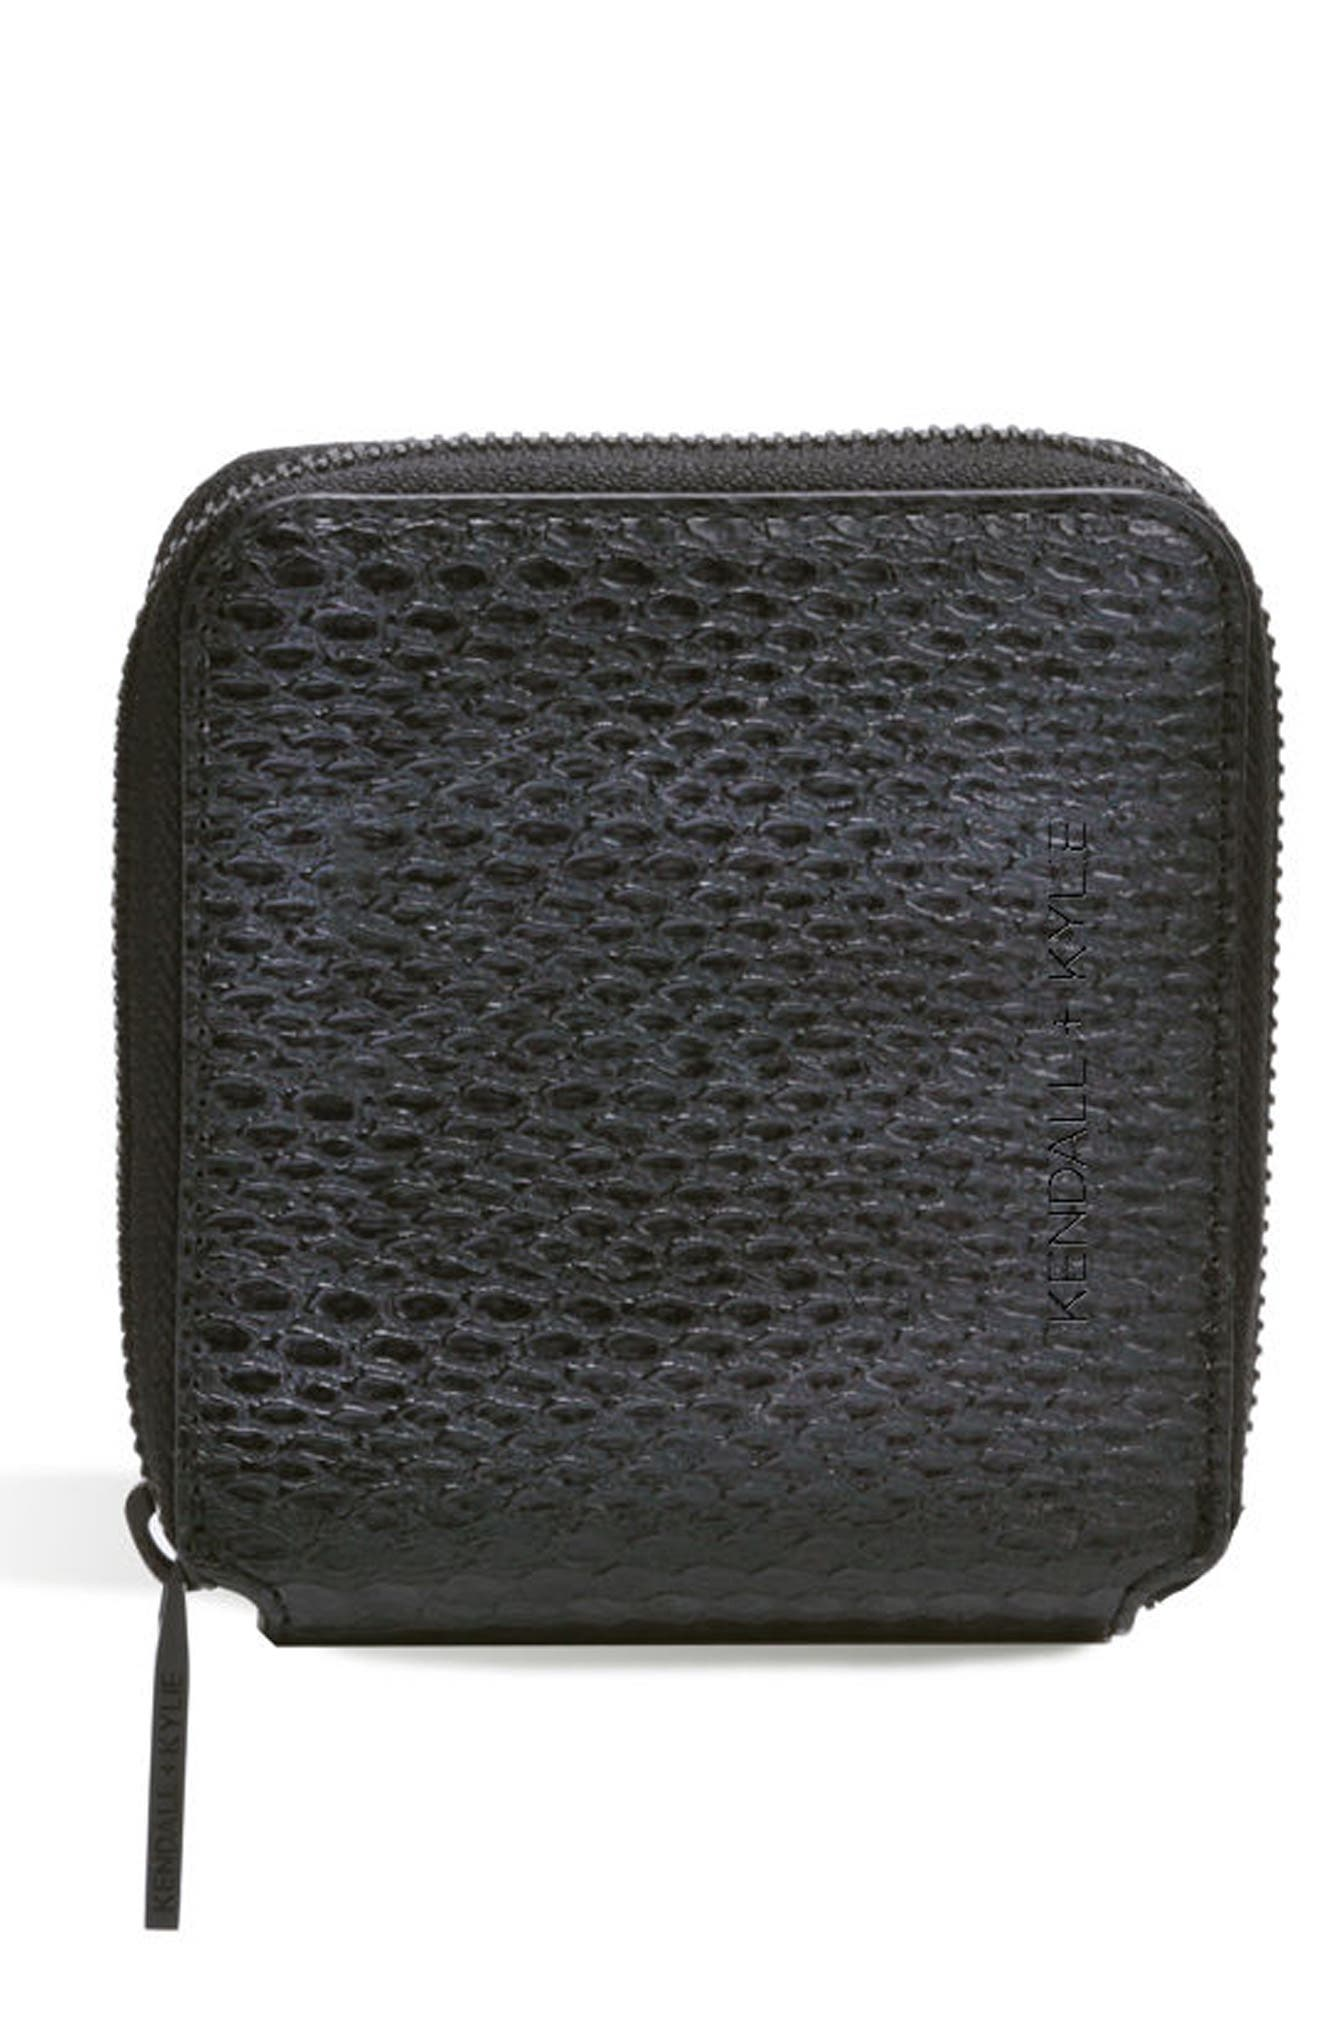 Alternate Image 1 Selected - KENDALL + KYLIE Brodie Faux Leather Wallet